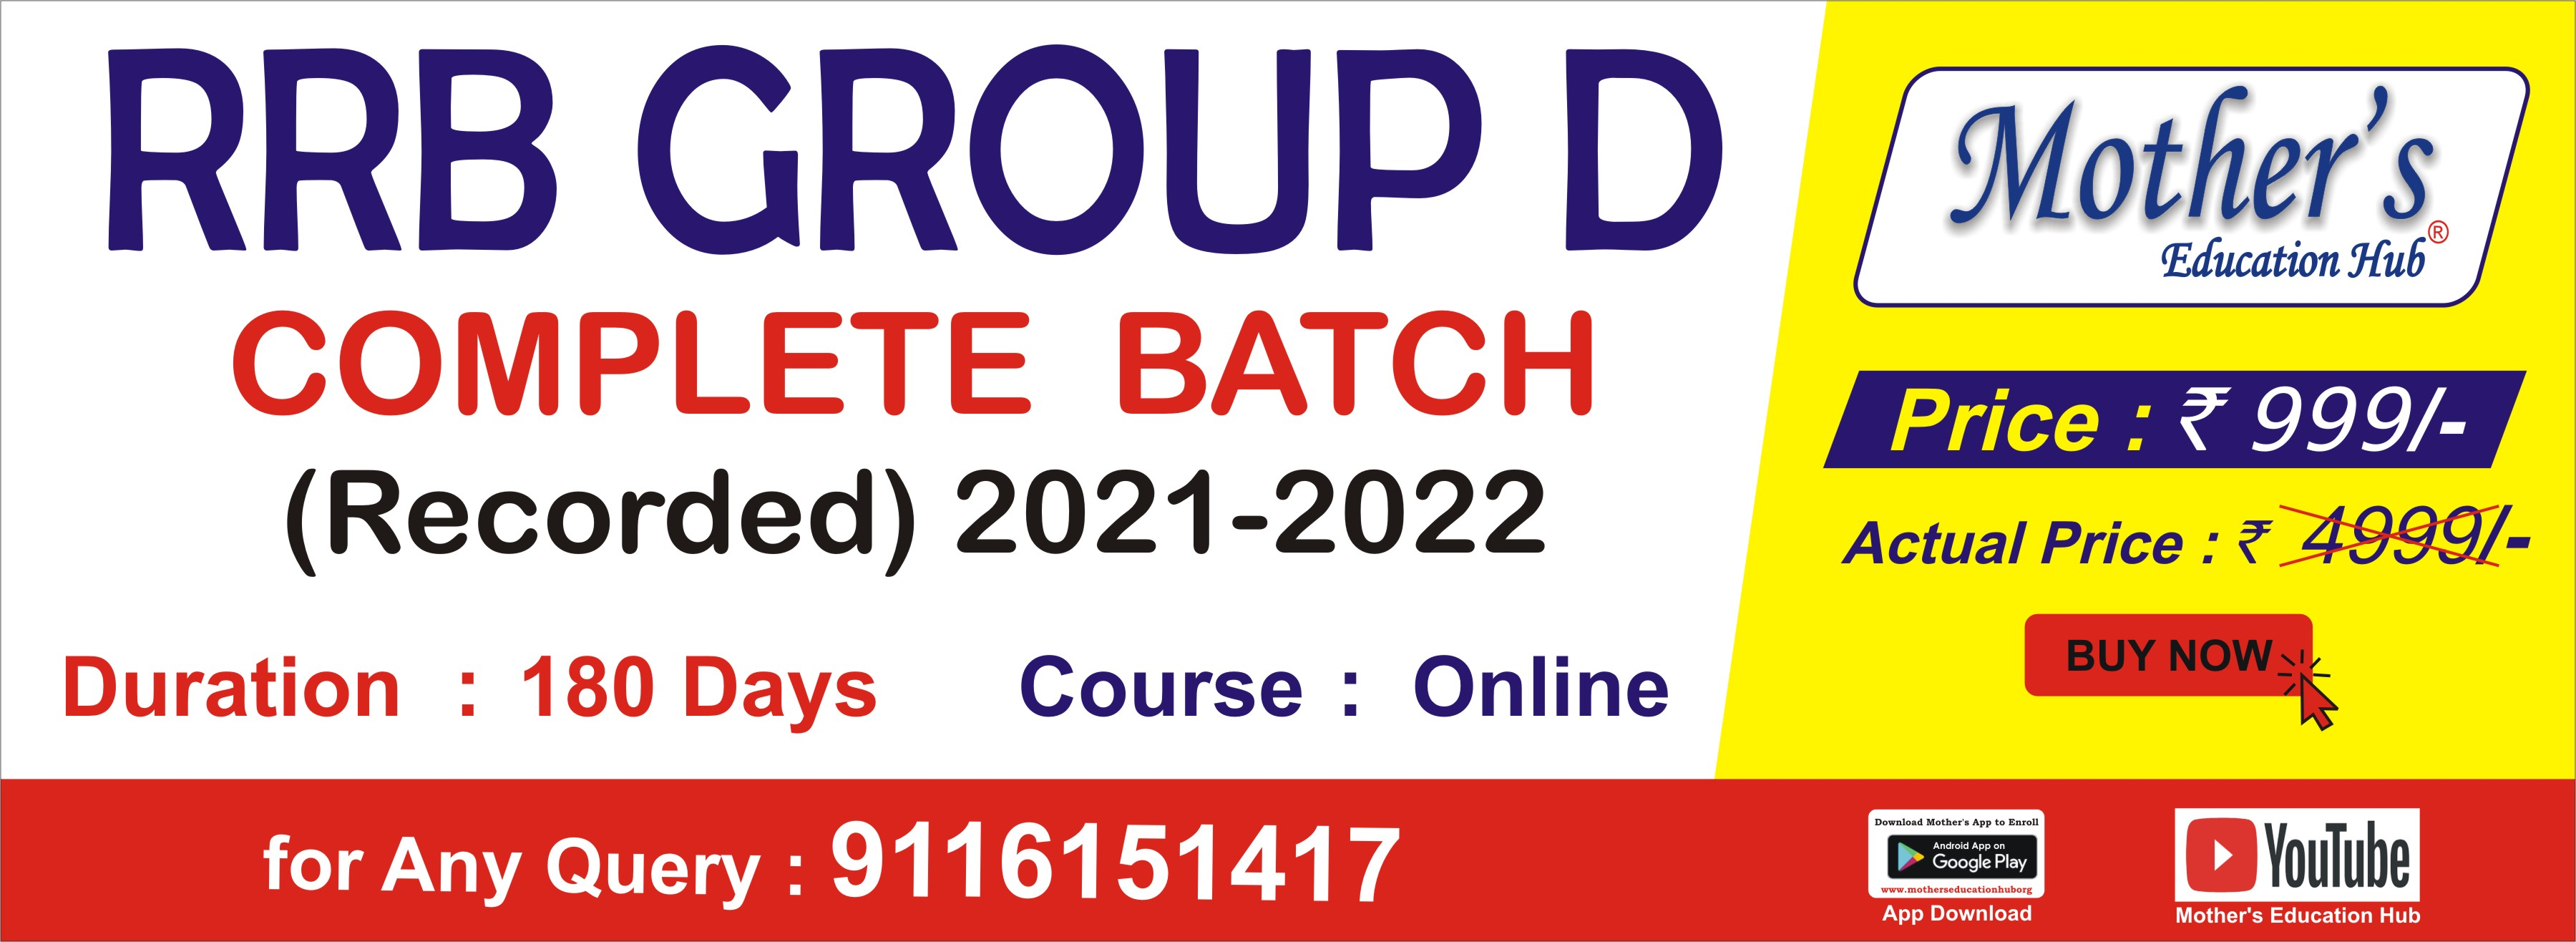 RRB GROUP D COMPLETE BATCH ( Recorded ) 2021-2022